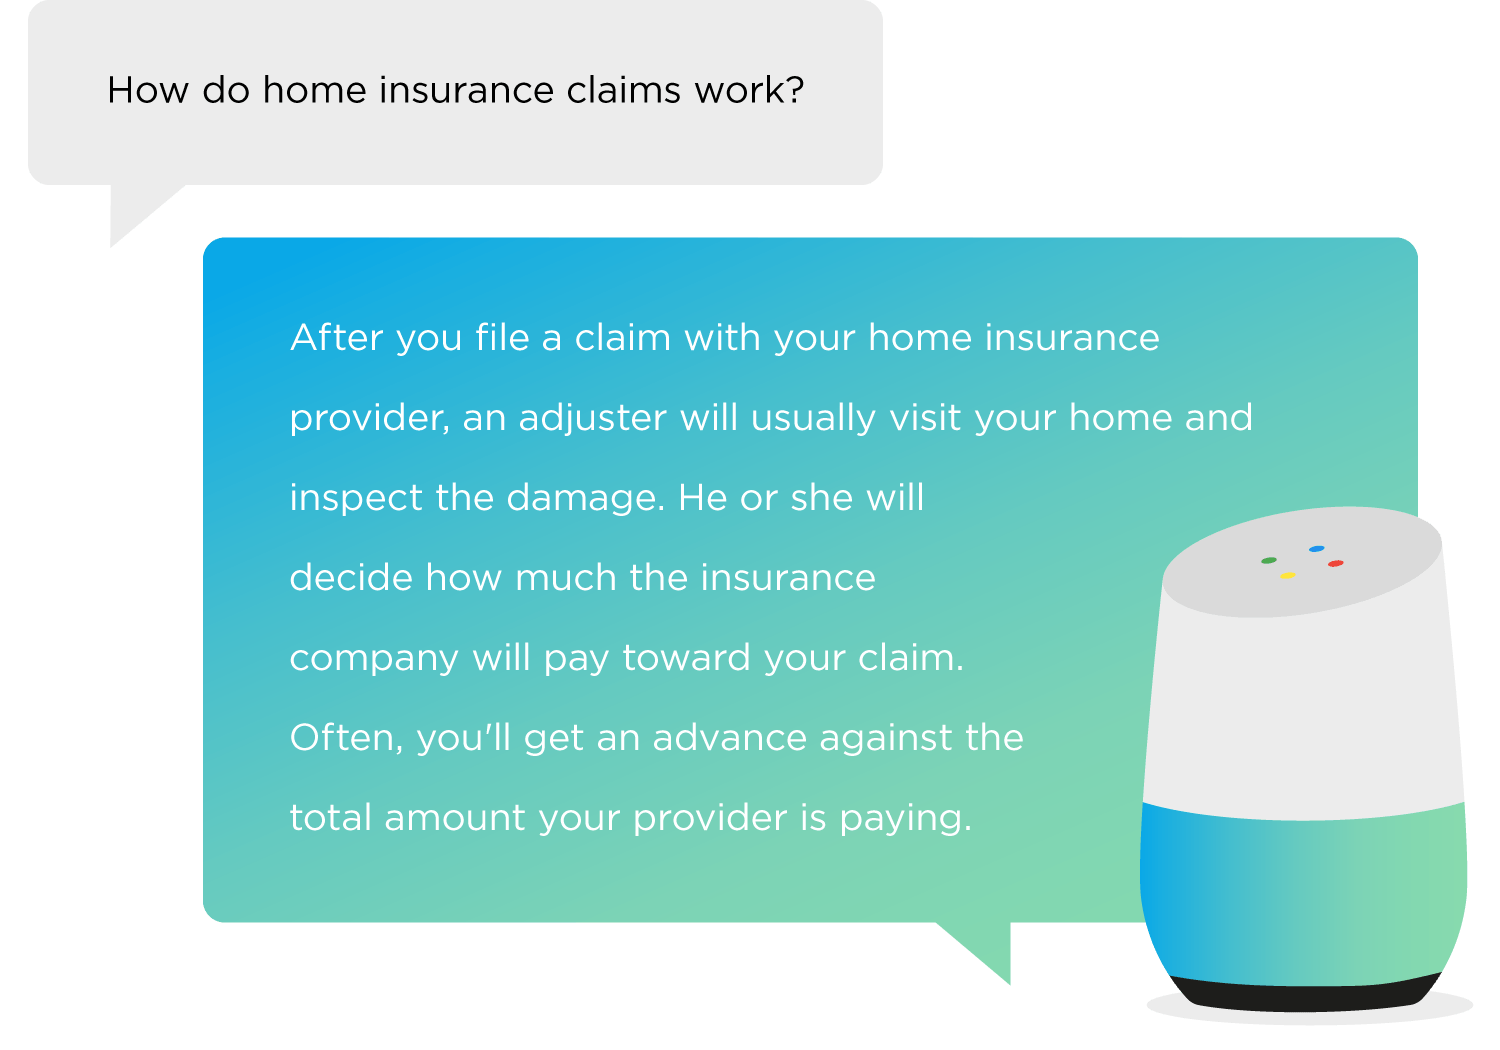 How do home insurance claims work?